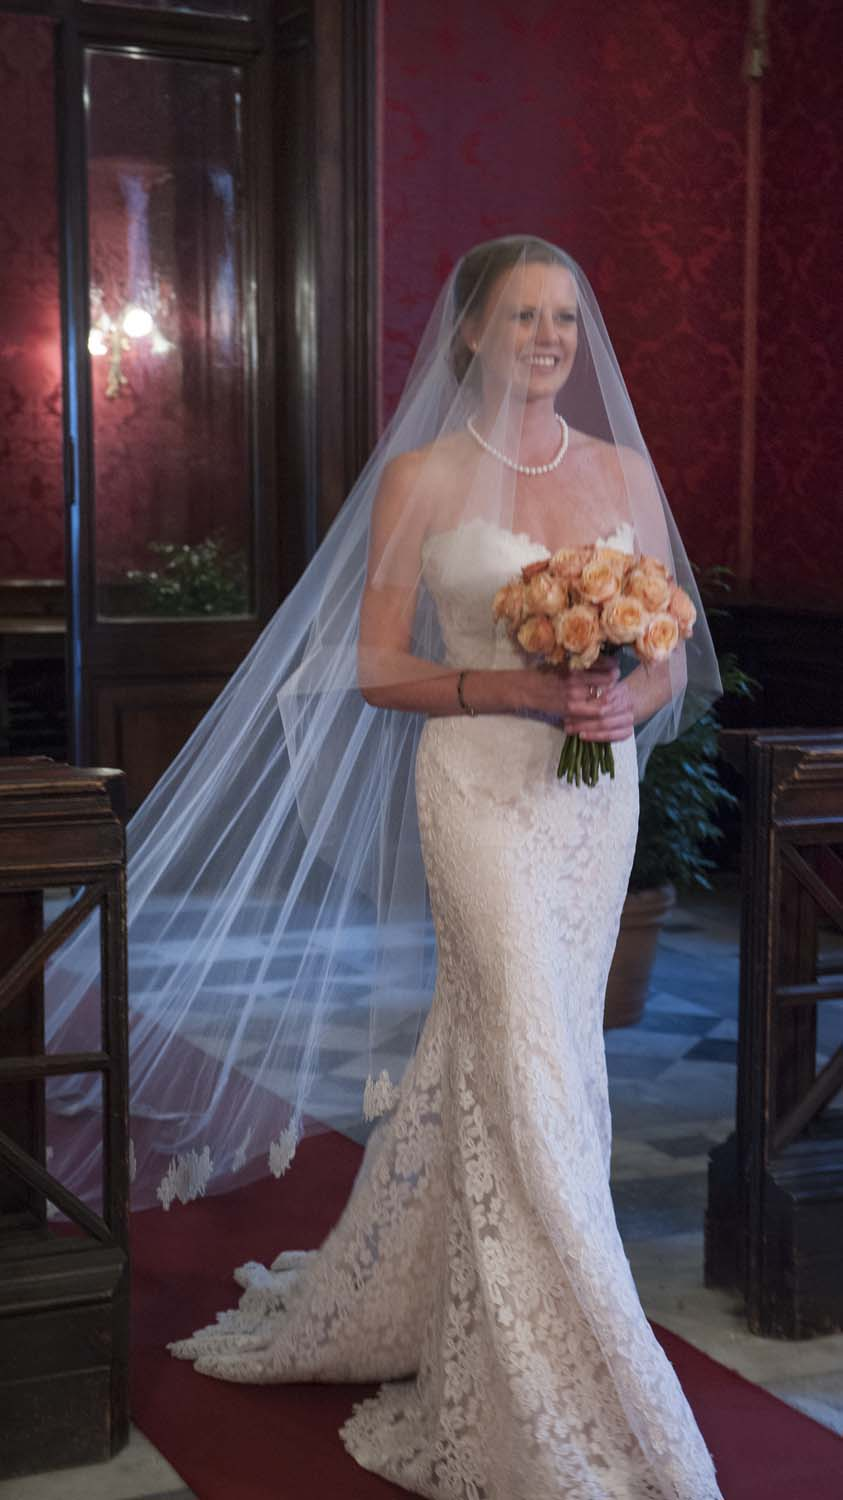 Intimate ceremony in Rome with romantic bridal entrance with peach color bouquet